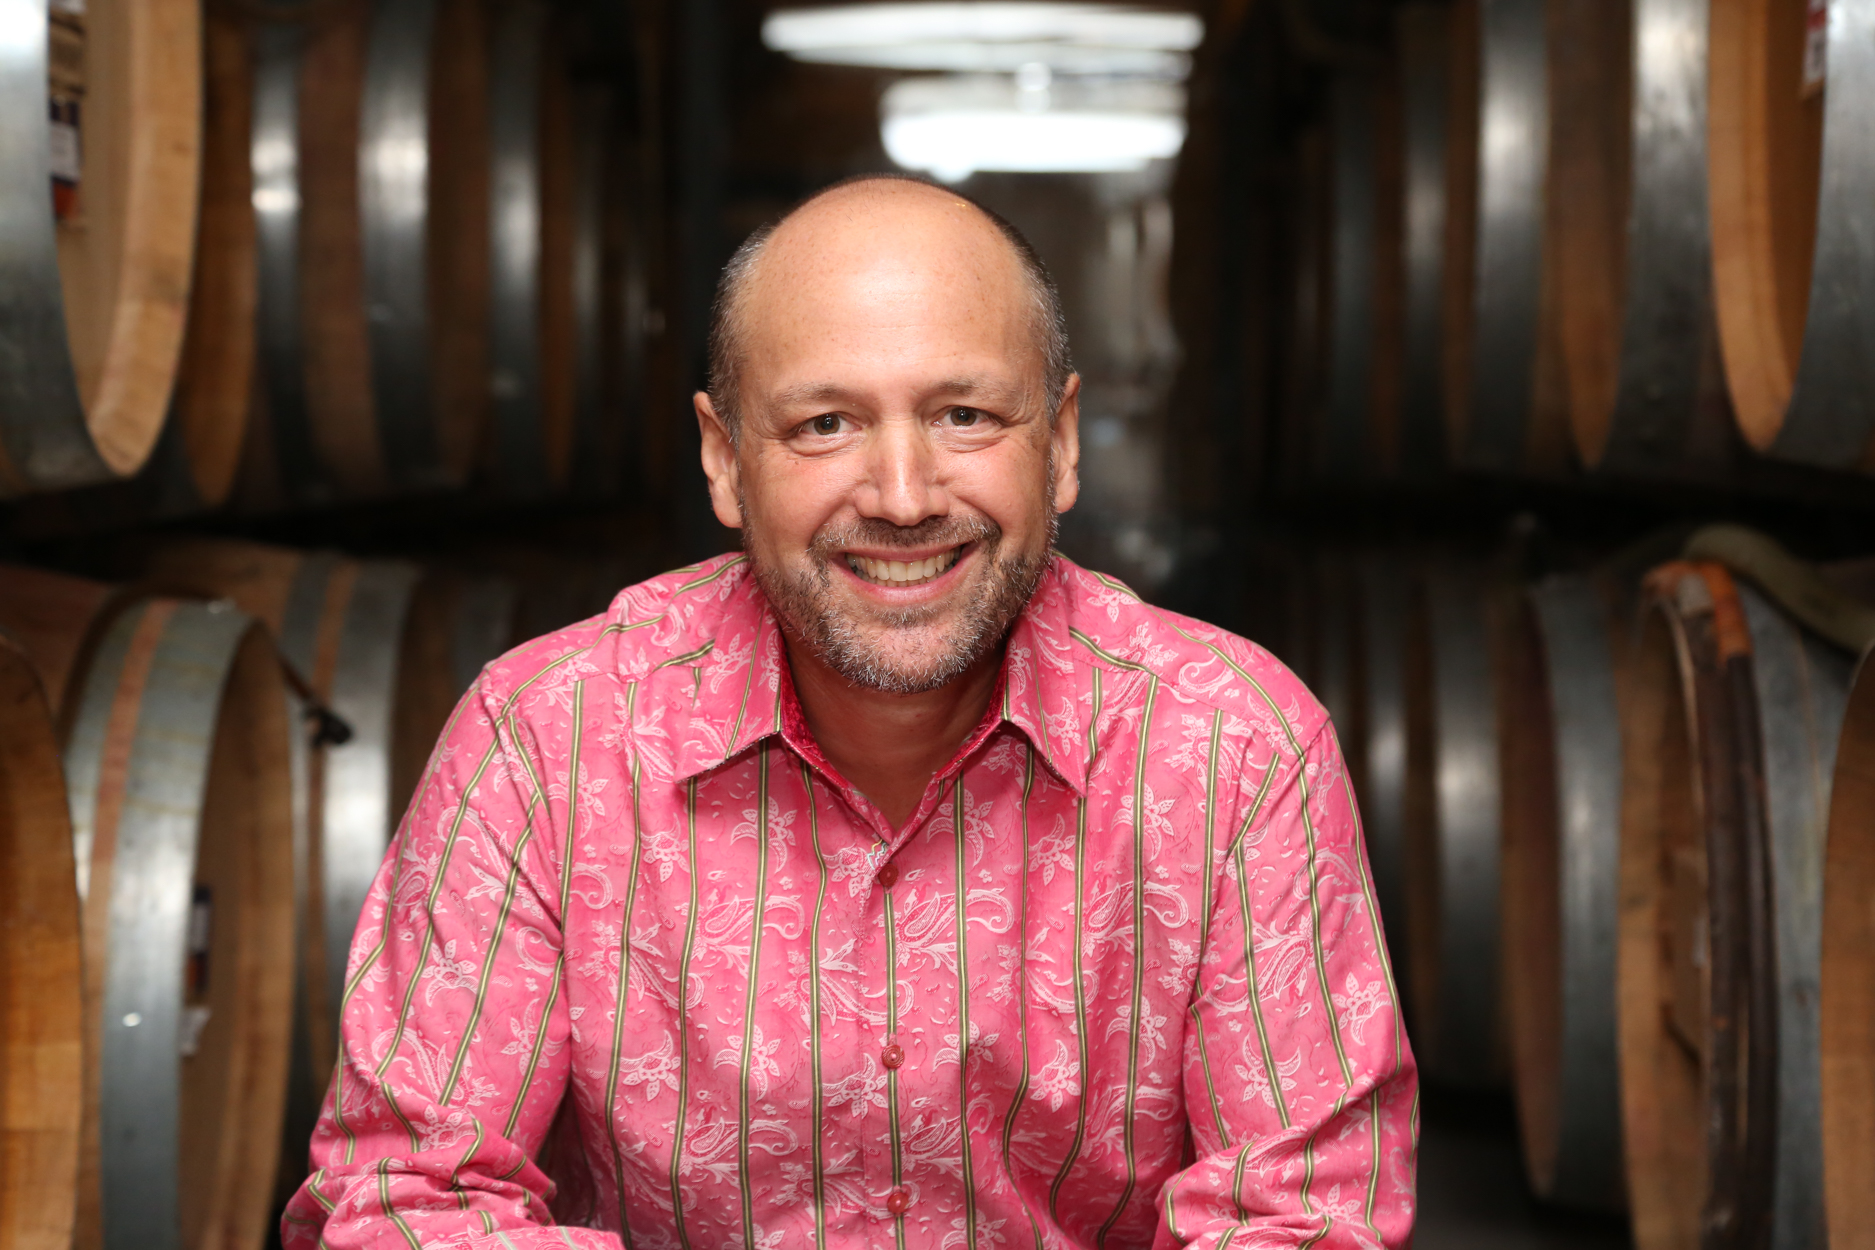 Michael Dorf of City Winery